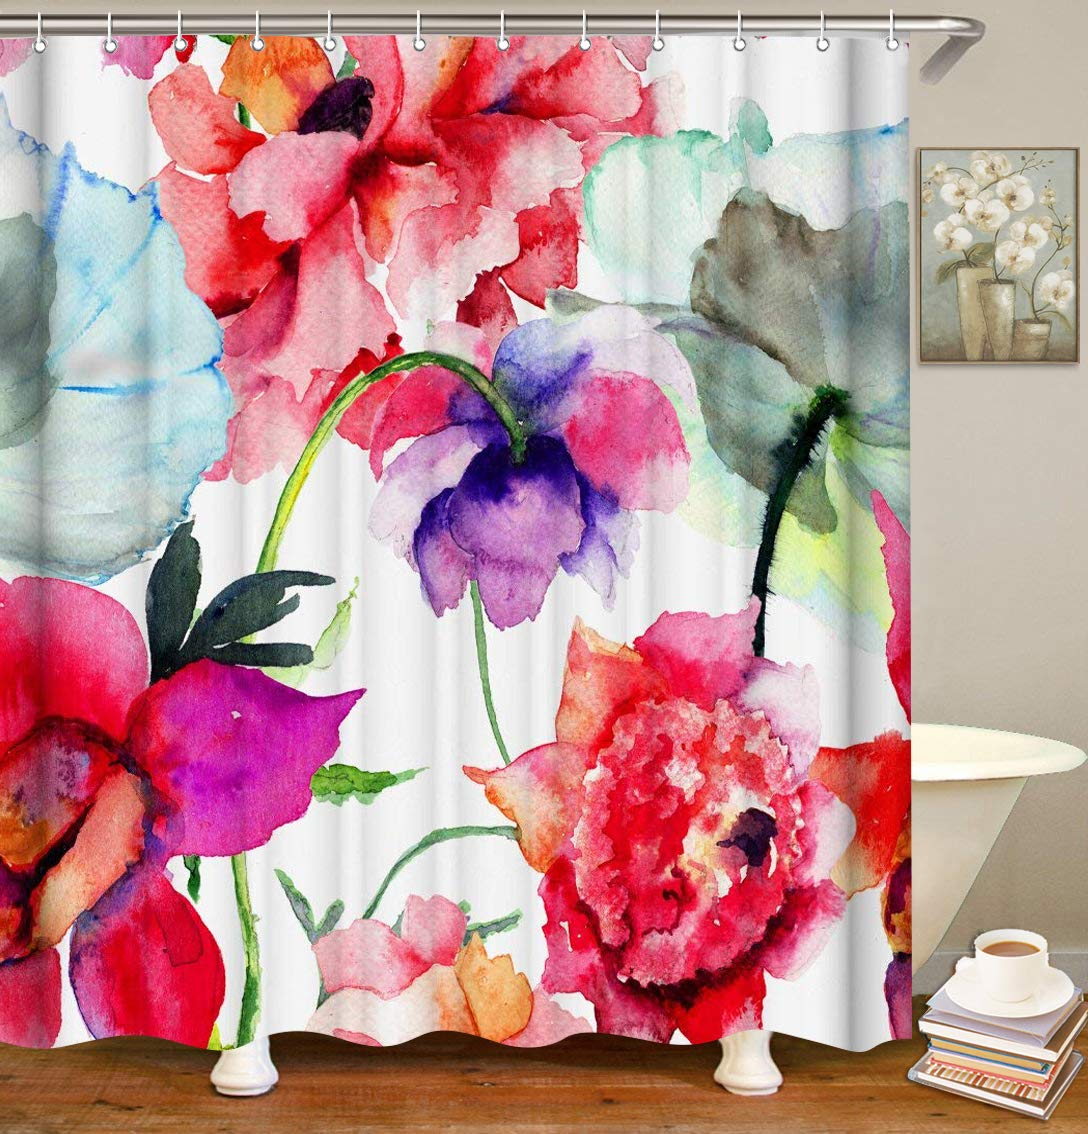 LIVILAN Aestheticism Shower Curtain Set, Abstract Watercolor Floral Print, Thick Polyester Fabric, Waterproof Machine Washable, 72 X 72 inch, Red by LIVILAN